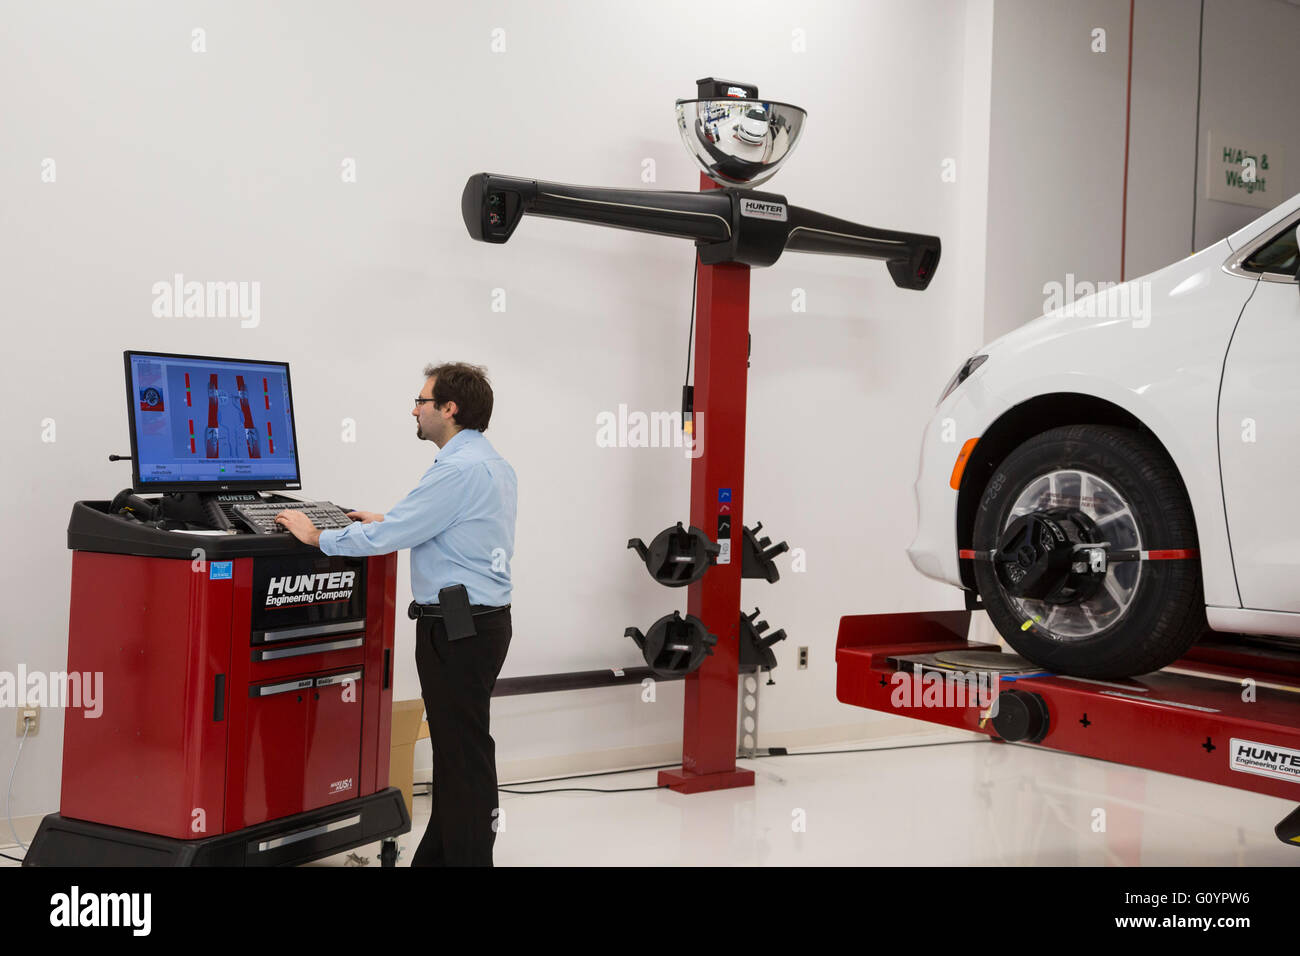 Windsor, Ontario, Canada. 6th May, 2016. The quality control center at Fiat Chrysler Automobiles' Windsor Assembly - Stock Image